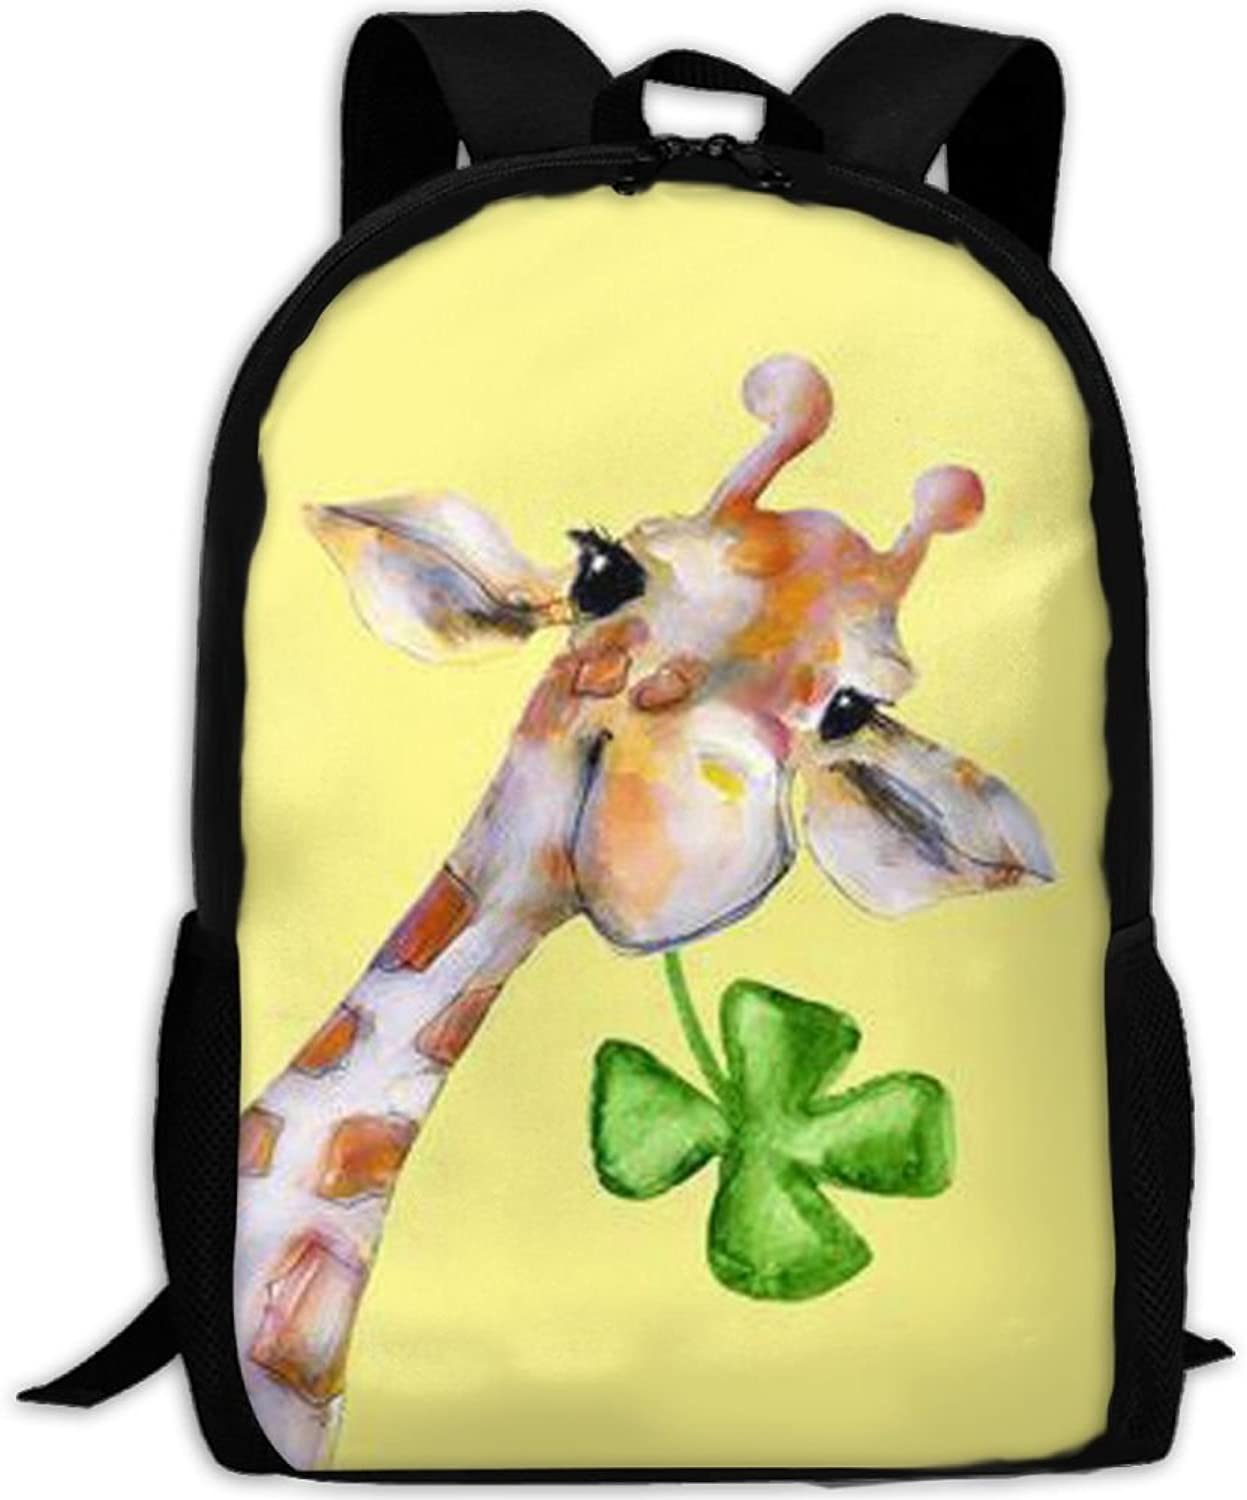 Adult Backpack Giraffe With Lucky Leaf College Daypack Oxford Bag Unisex Business Travel Sports Bag With Adjustable Strap